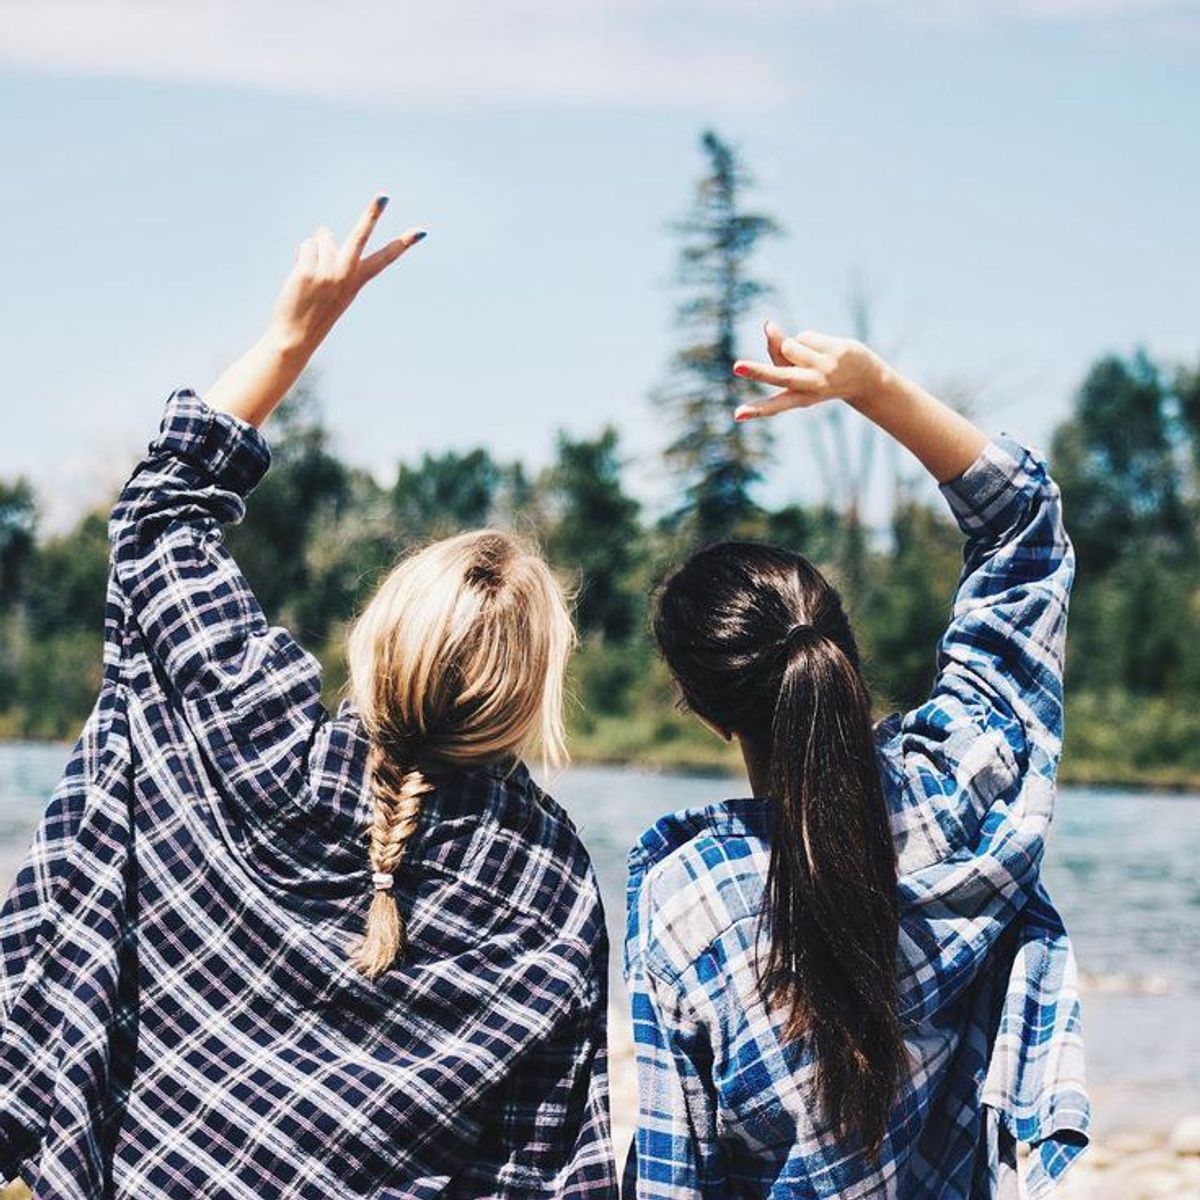 An Open Letter To The Friend Who Pushed Me Away